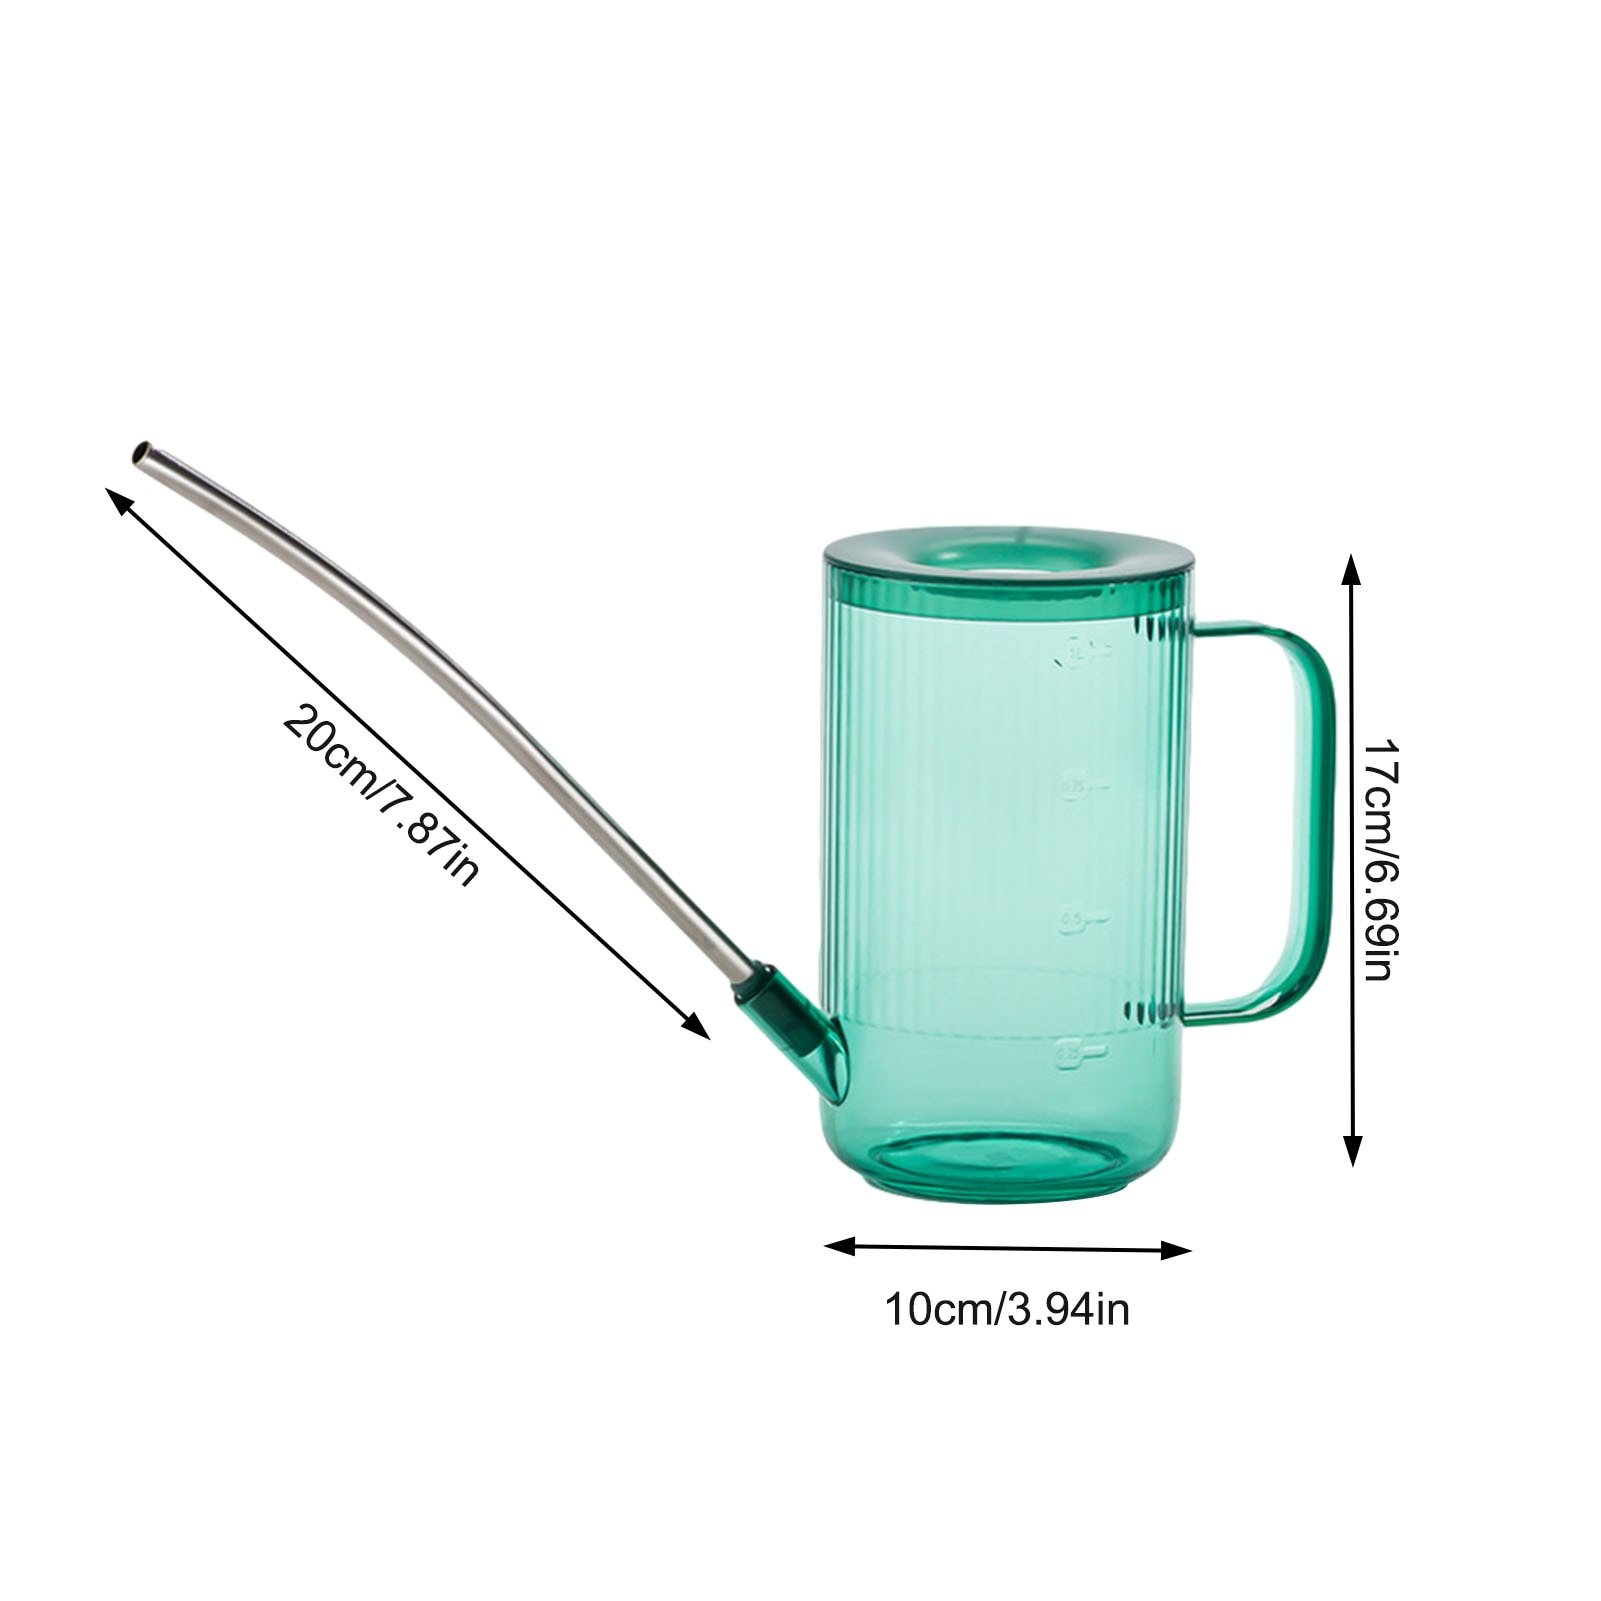 1L Long Mouth Watering Can Pouring Pot Watering Can Watering Flower Plants Shower Removable Watering Device Garden Tool